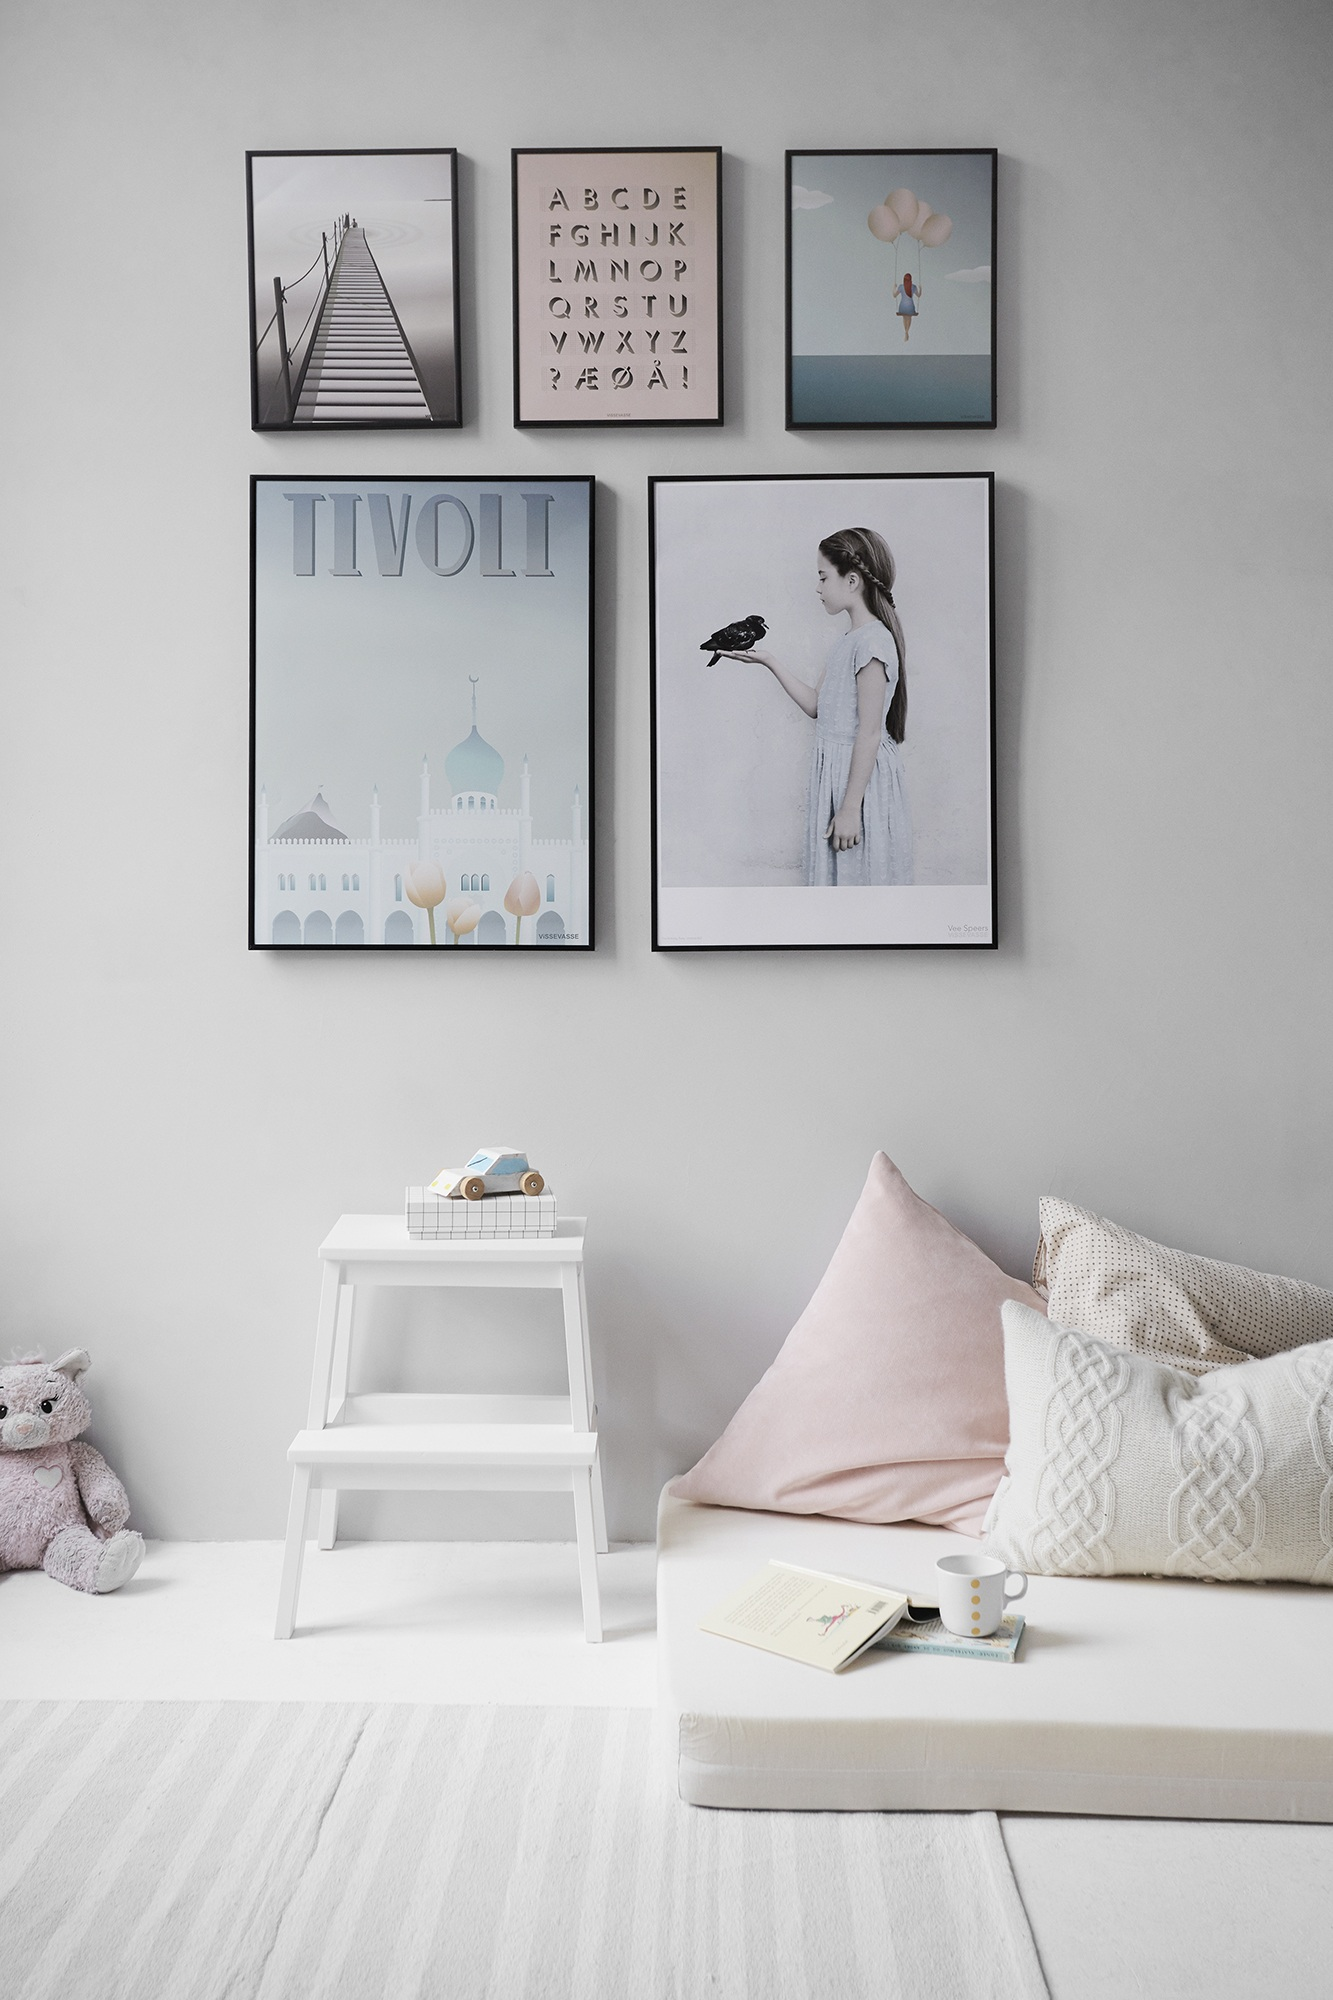 Bedroom Picture Gallery Wall  Best Ideas for the House